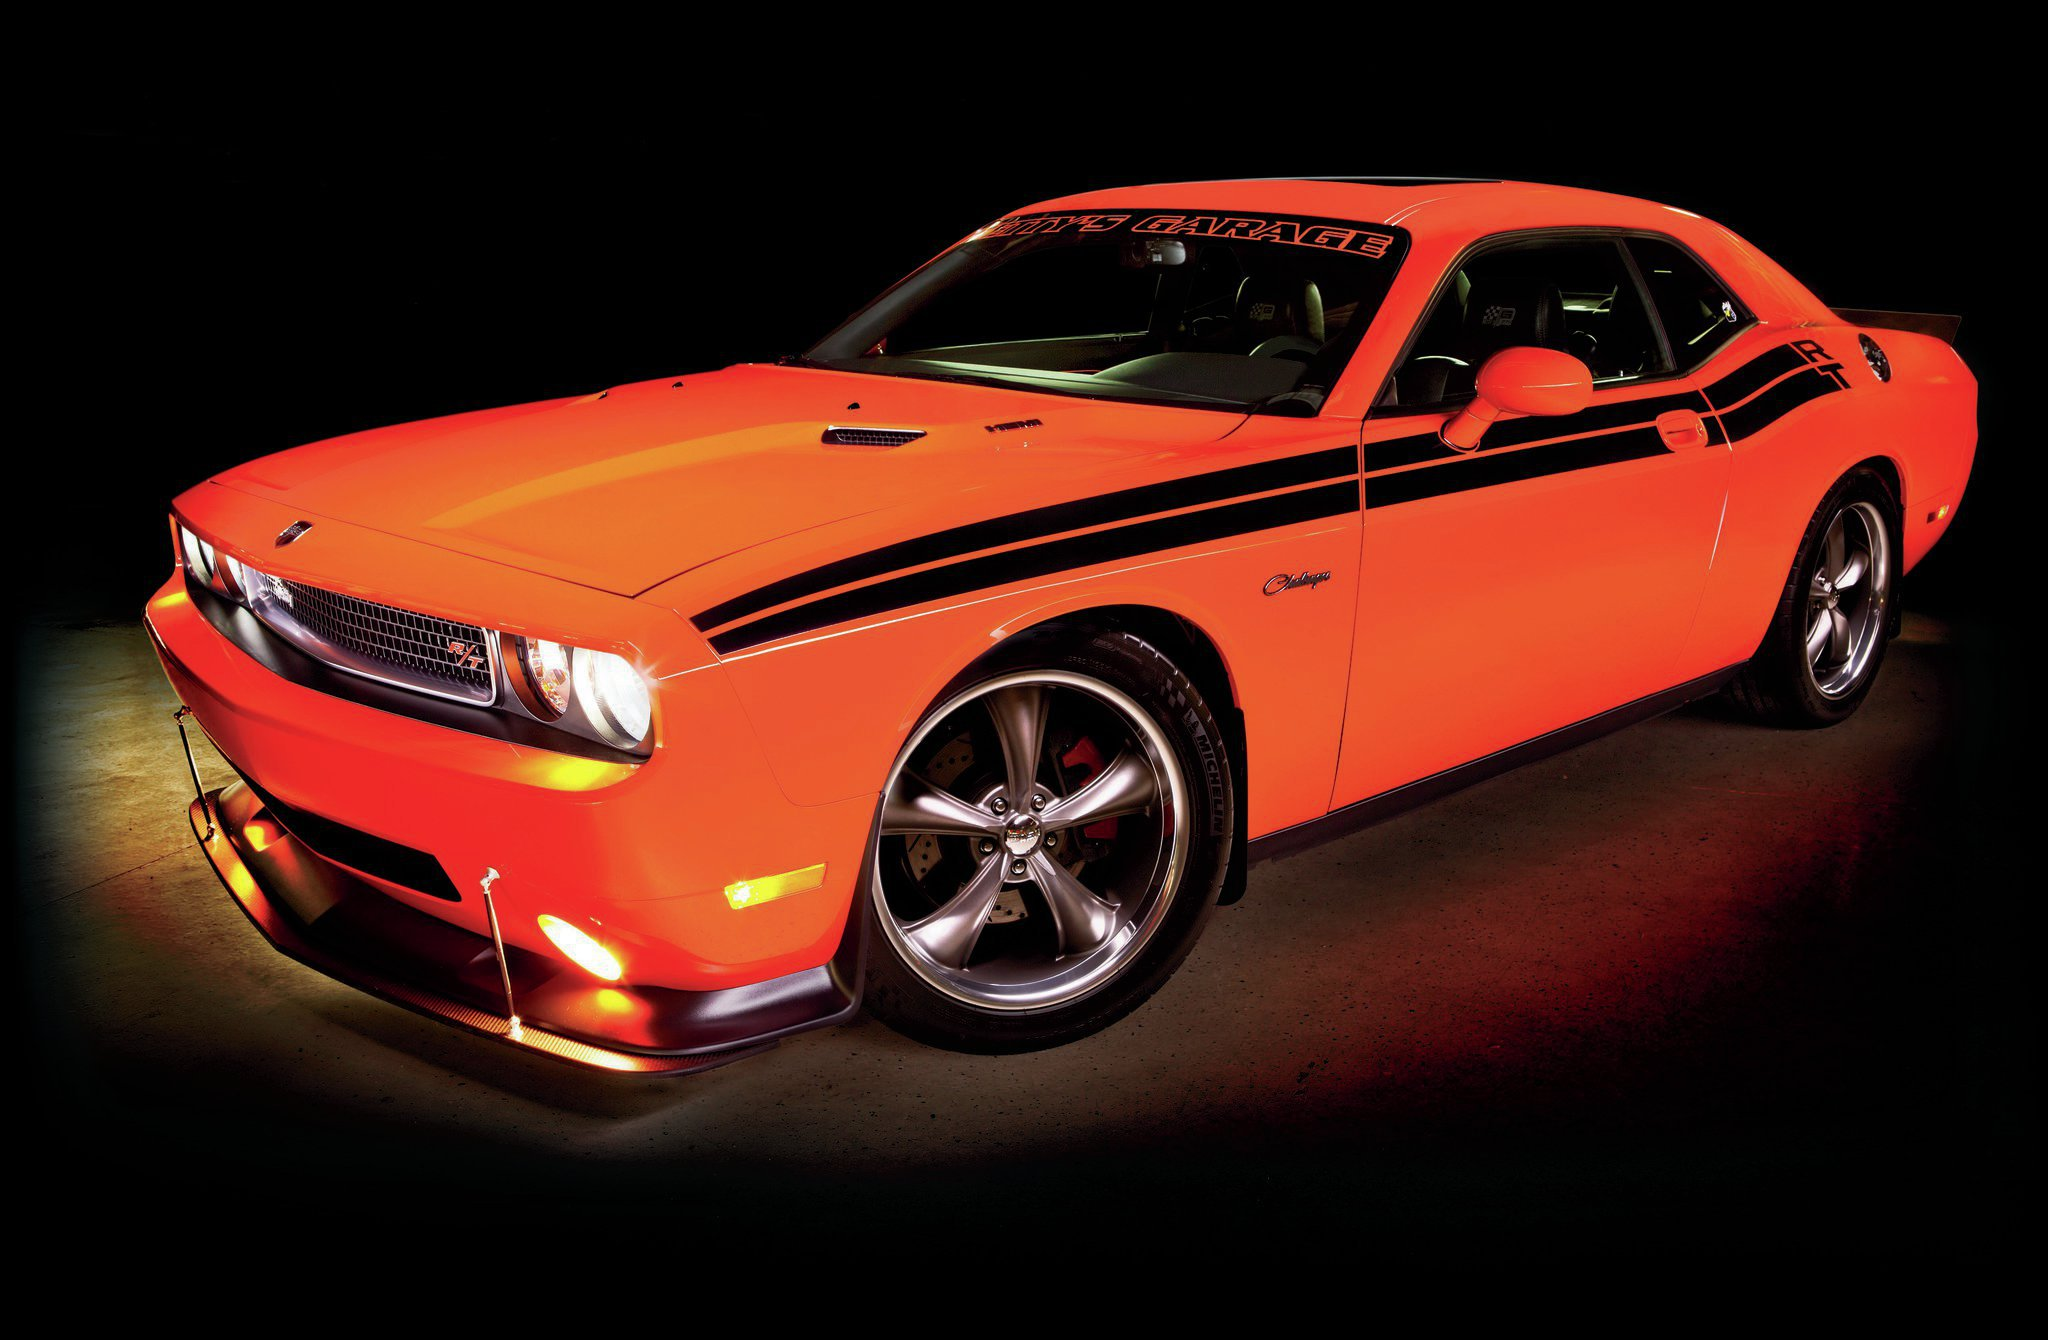 We love the clean integration of the air splitter with the air dam. The Challenger has the power to get up to high speeds in a hurry on track, and that package will help keep the front end pushed into the ground.